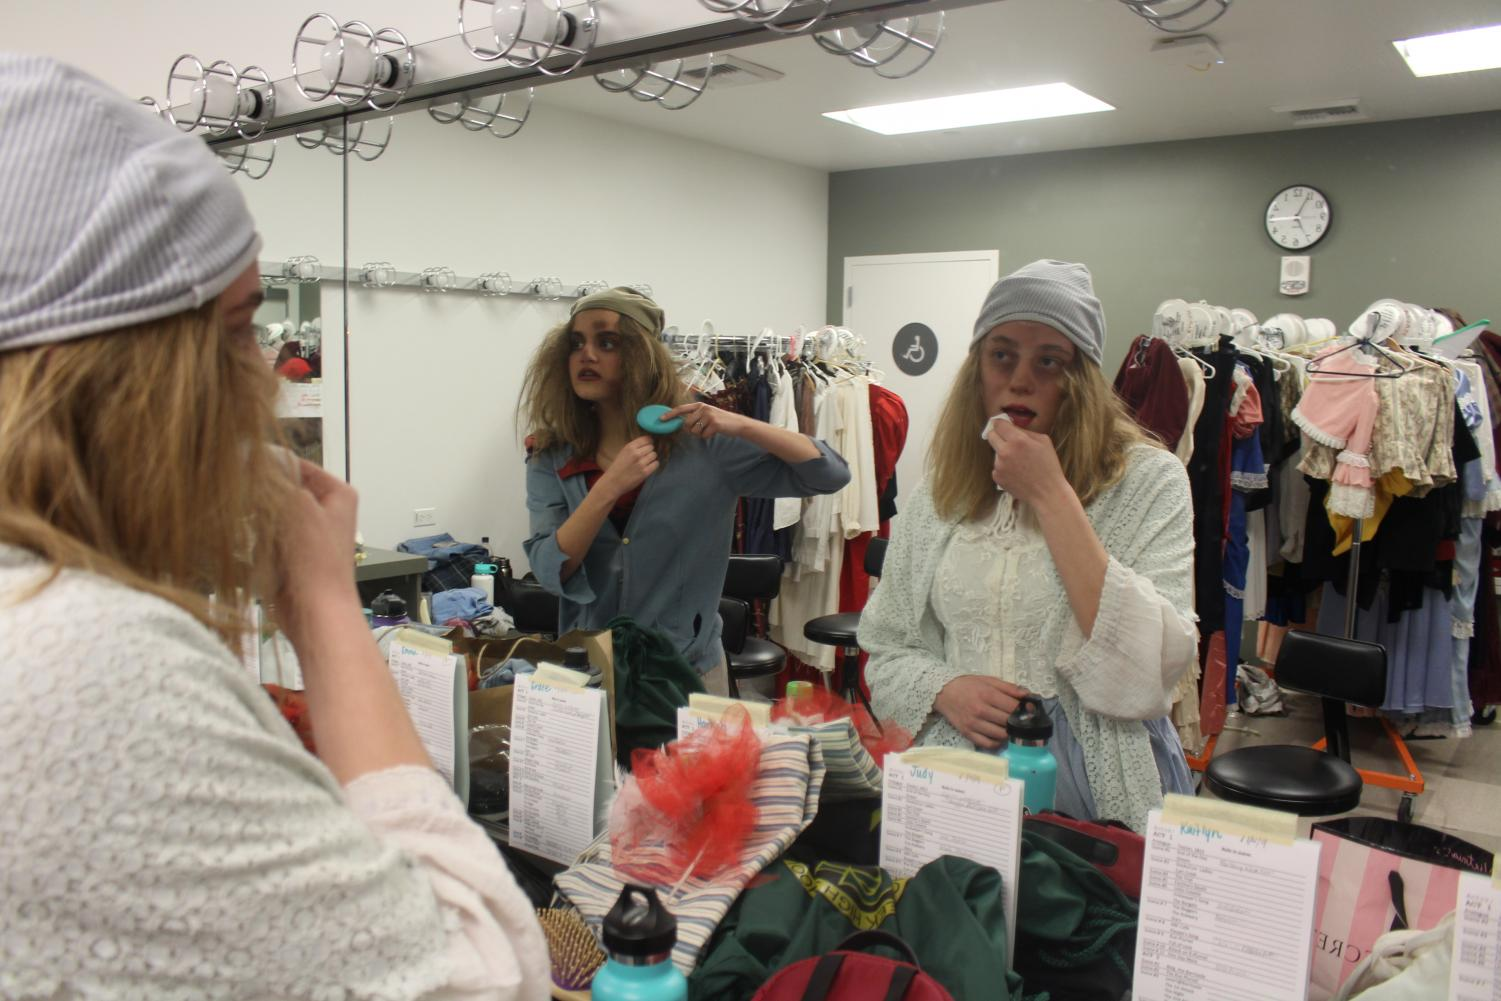 Hannah+Katz+and+Emma+Belnap+do+their+hair+and+makeup+before+the+show+begins.+Both+Katz+and+Belnap+are+involved+in+advanced+theater+at+Sage+Creek+regardless+of+the+fact+they+are+only+sophomores.+